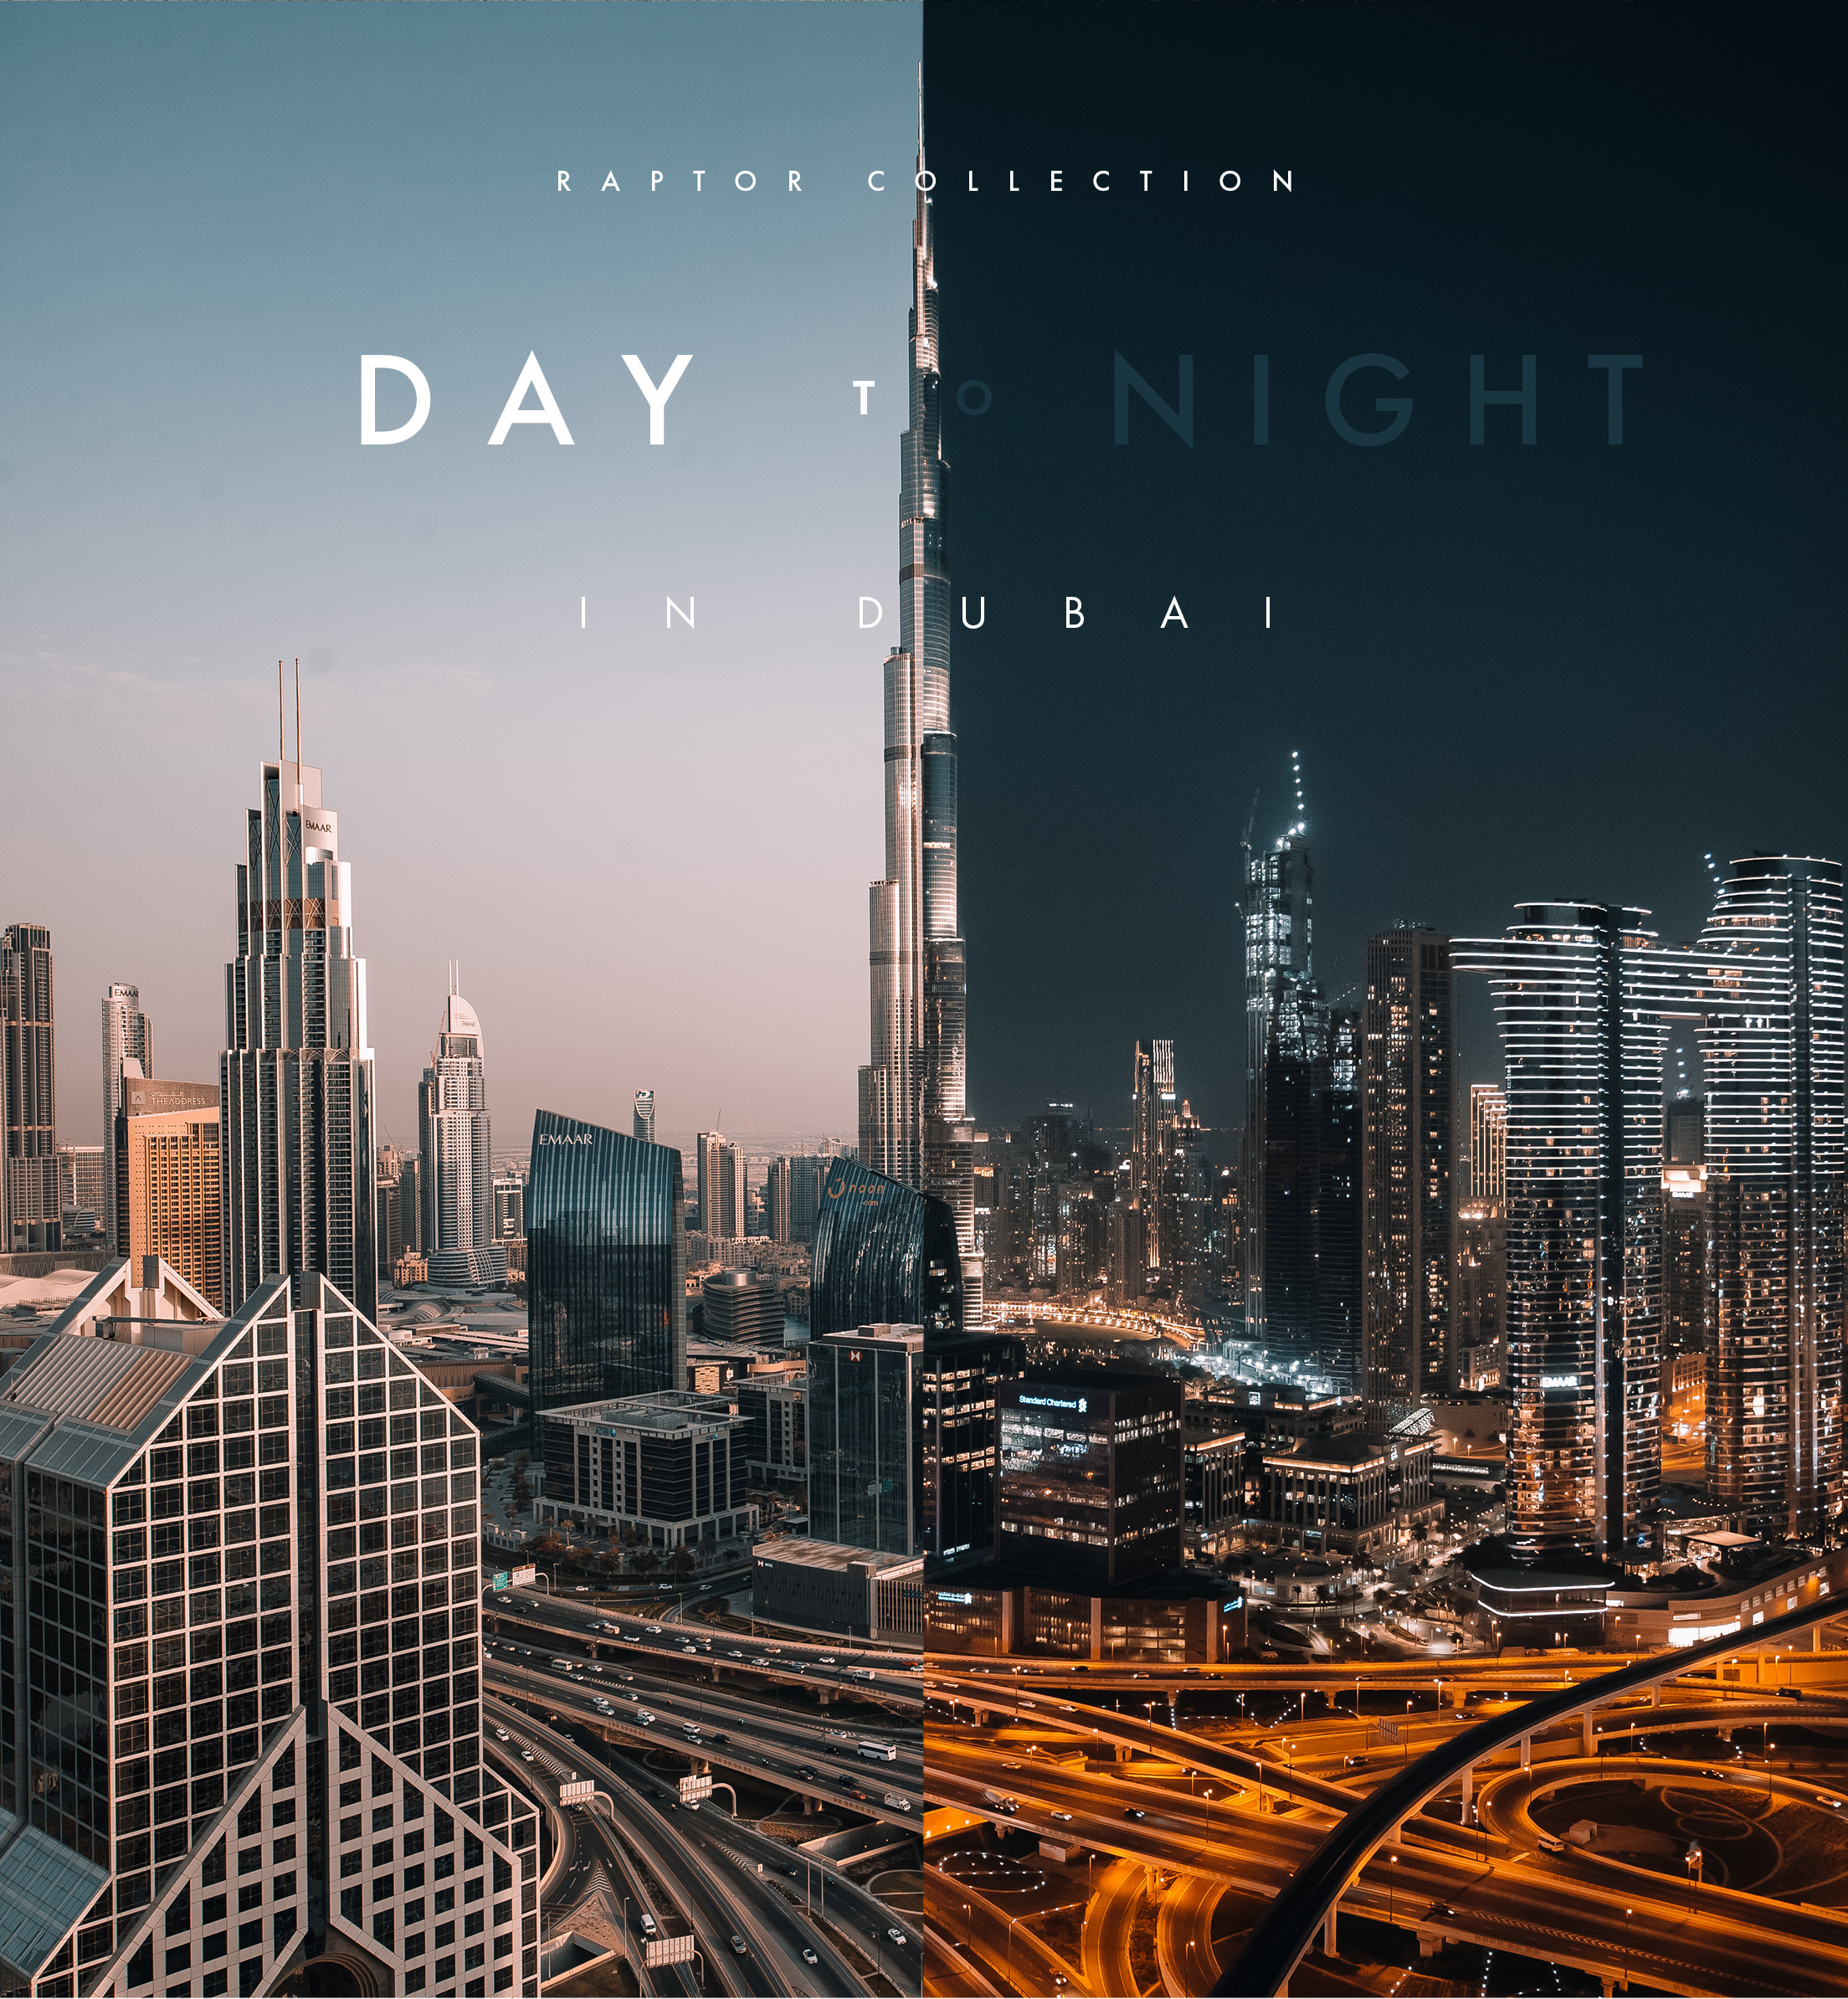 Raptor Collection | Day to Night in Dubai